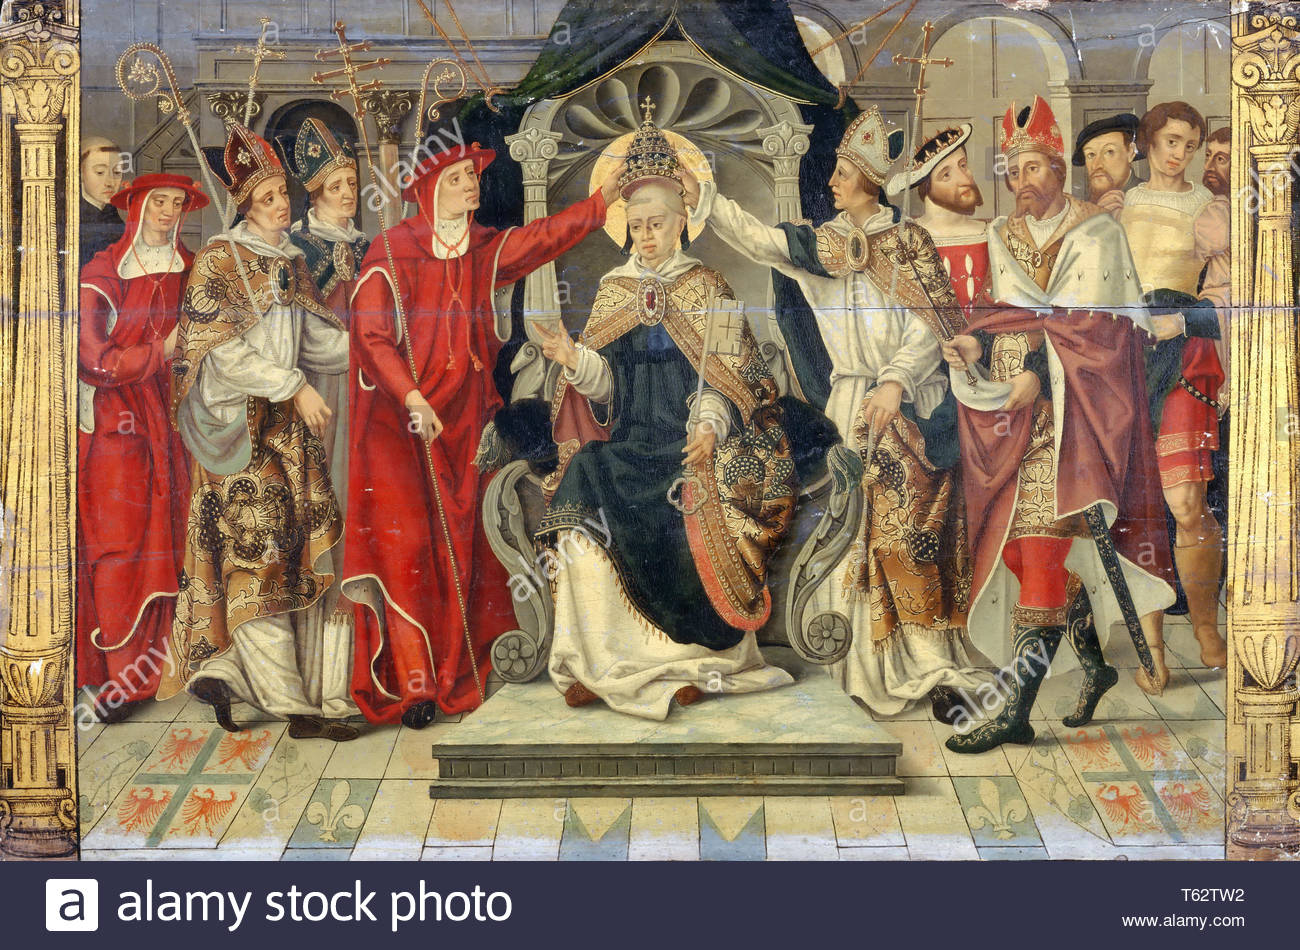 French School; formerly considered Flemish-Coronation of Pope Celestine V in 1294 - Stock Image